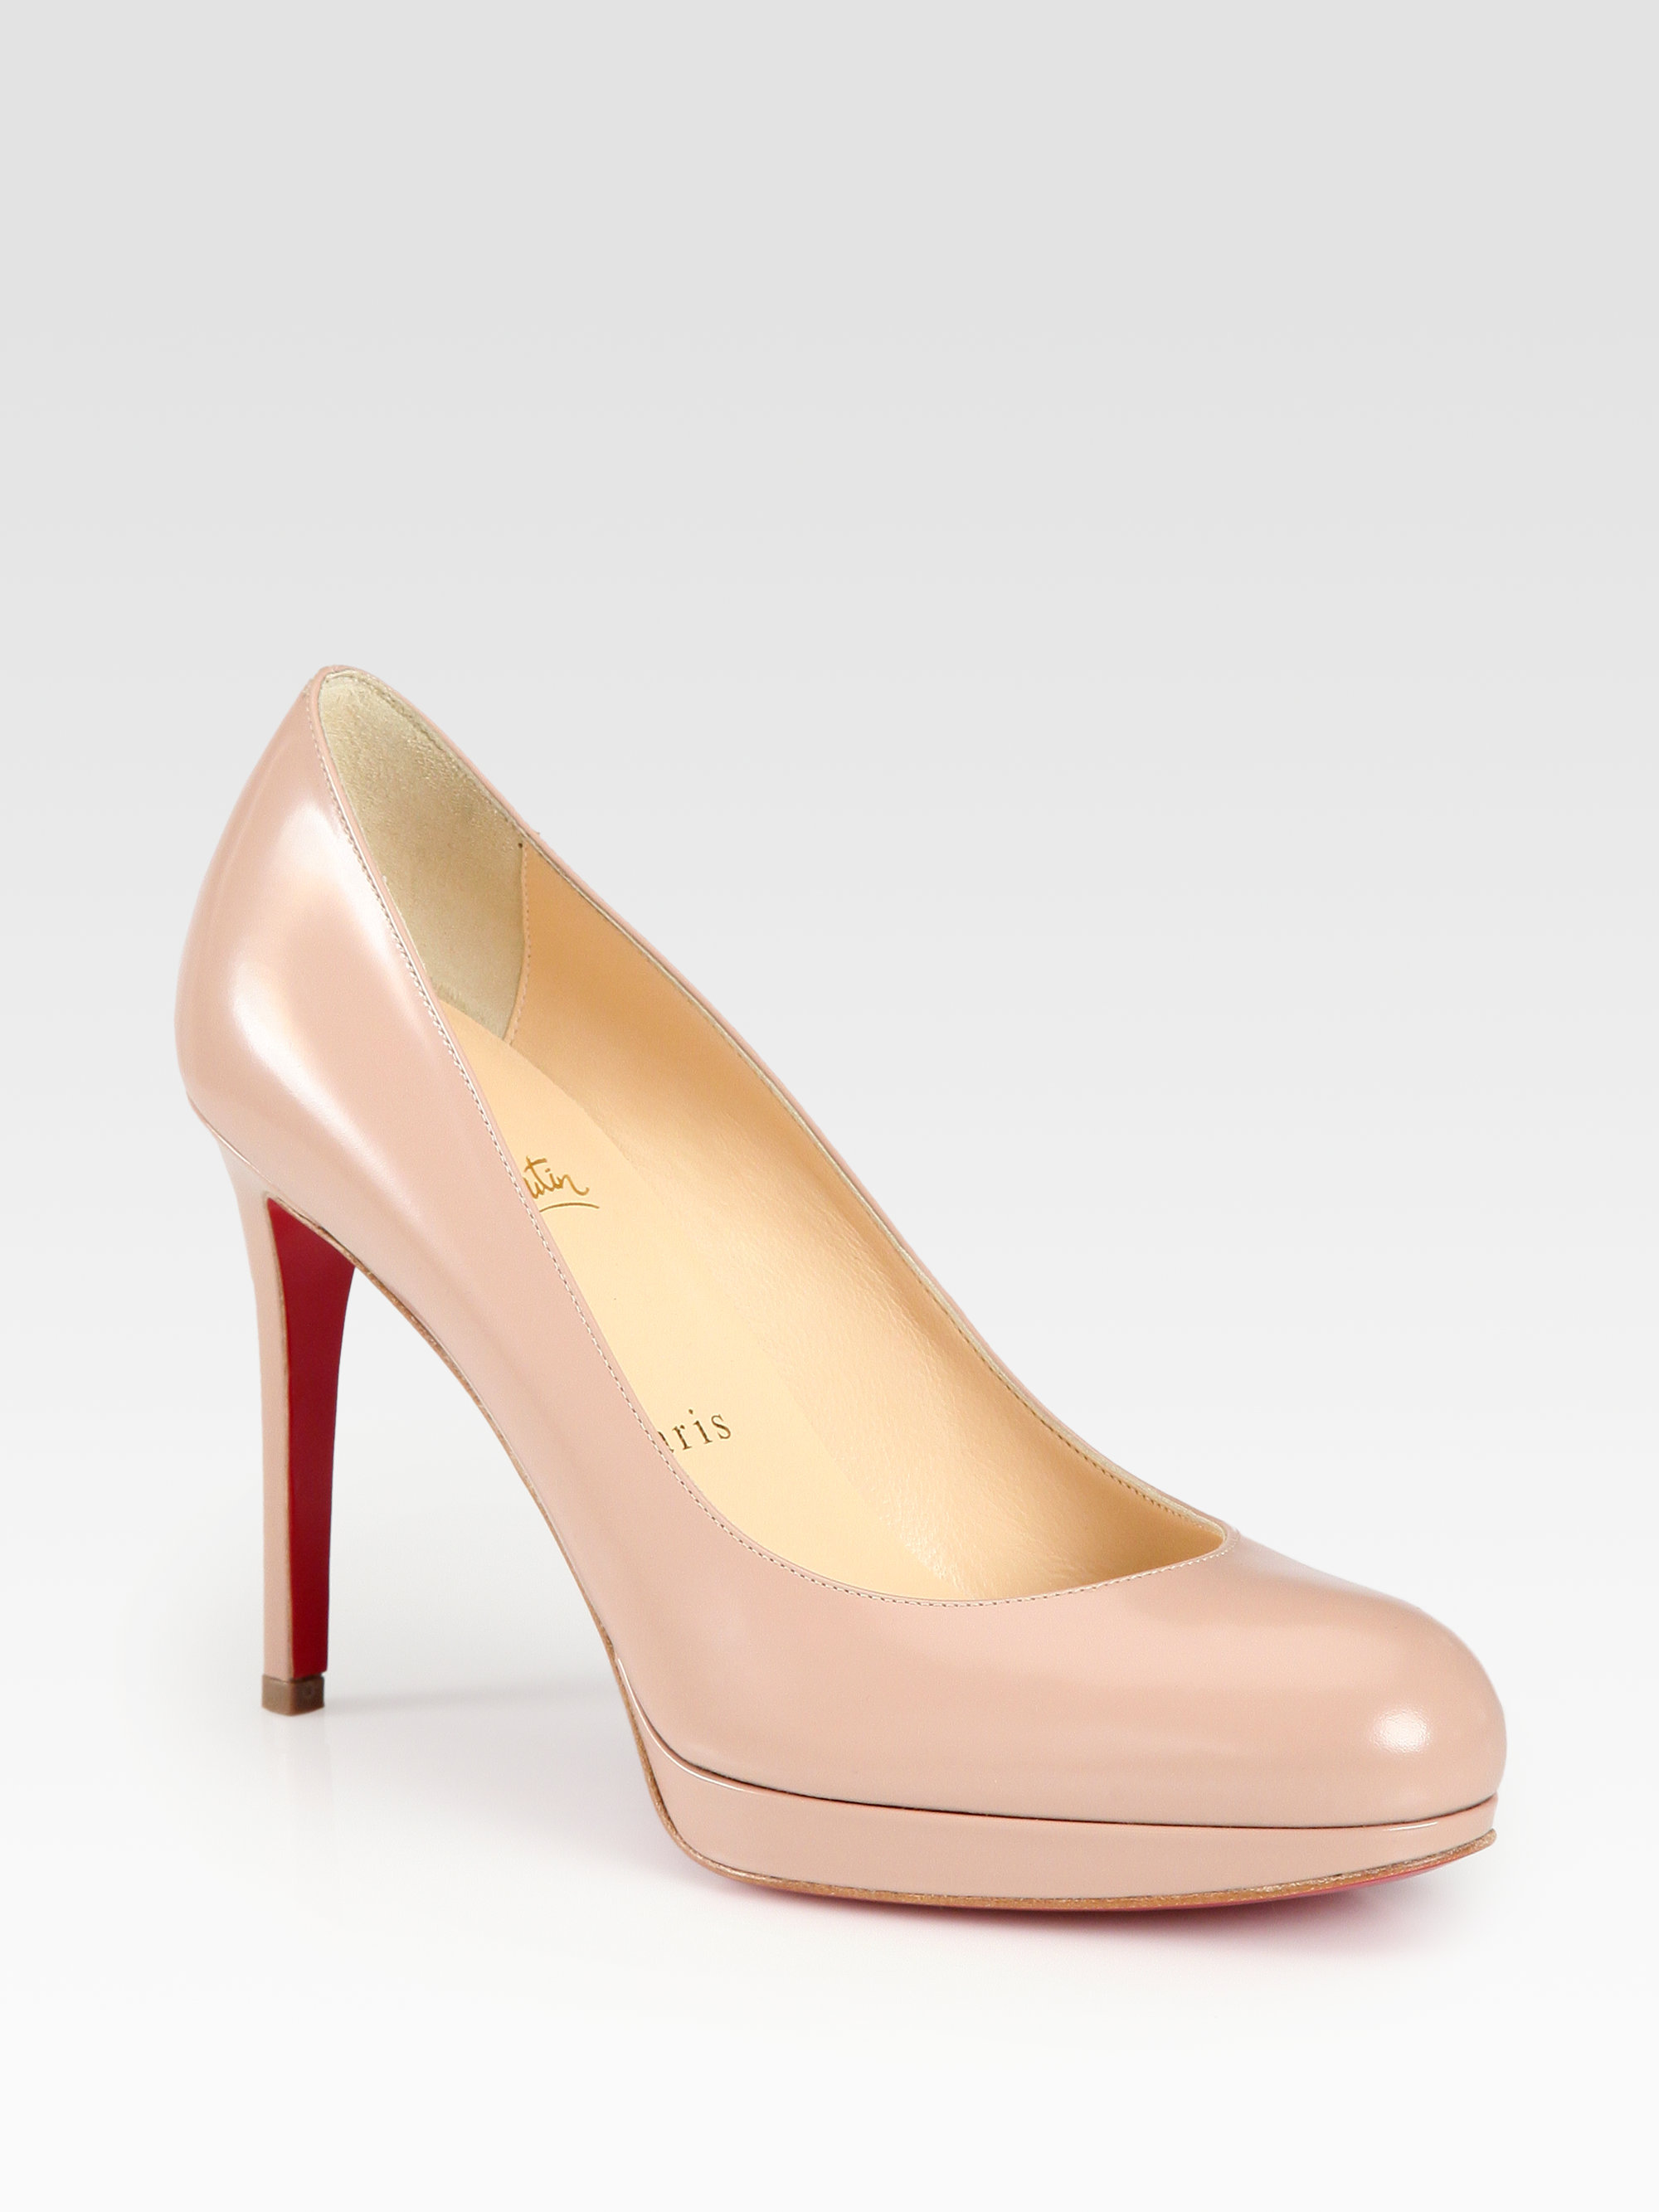 white spiked louboutin pumps - christian louboutin round-toe Simple pumps Bronze metallic leather ...